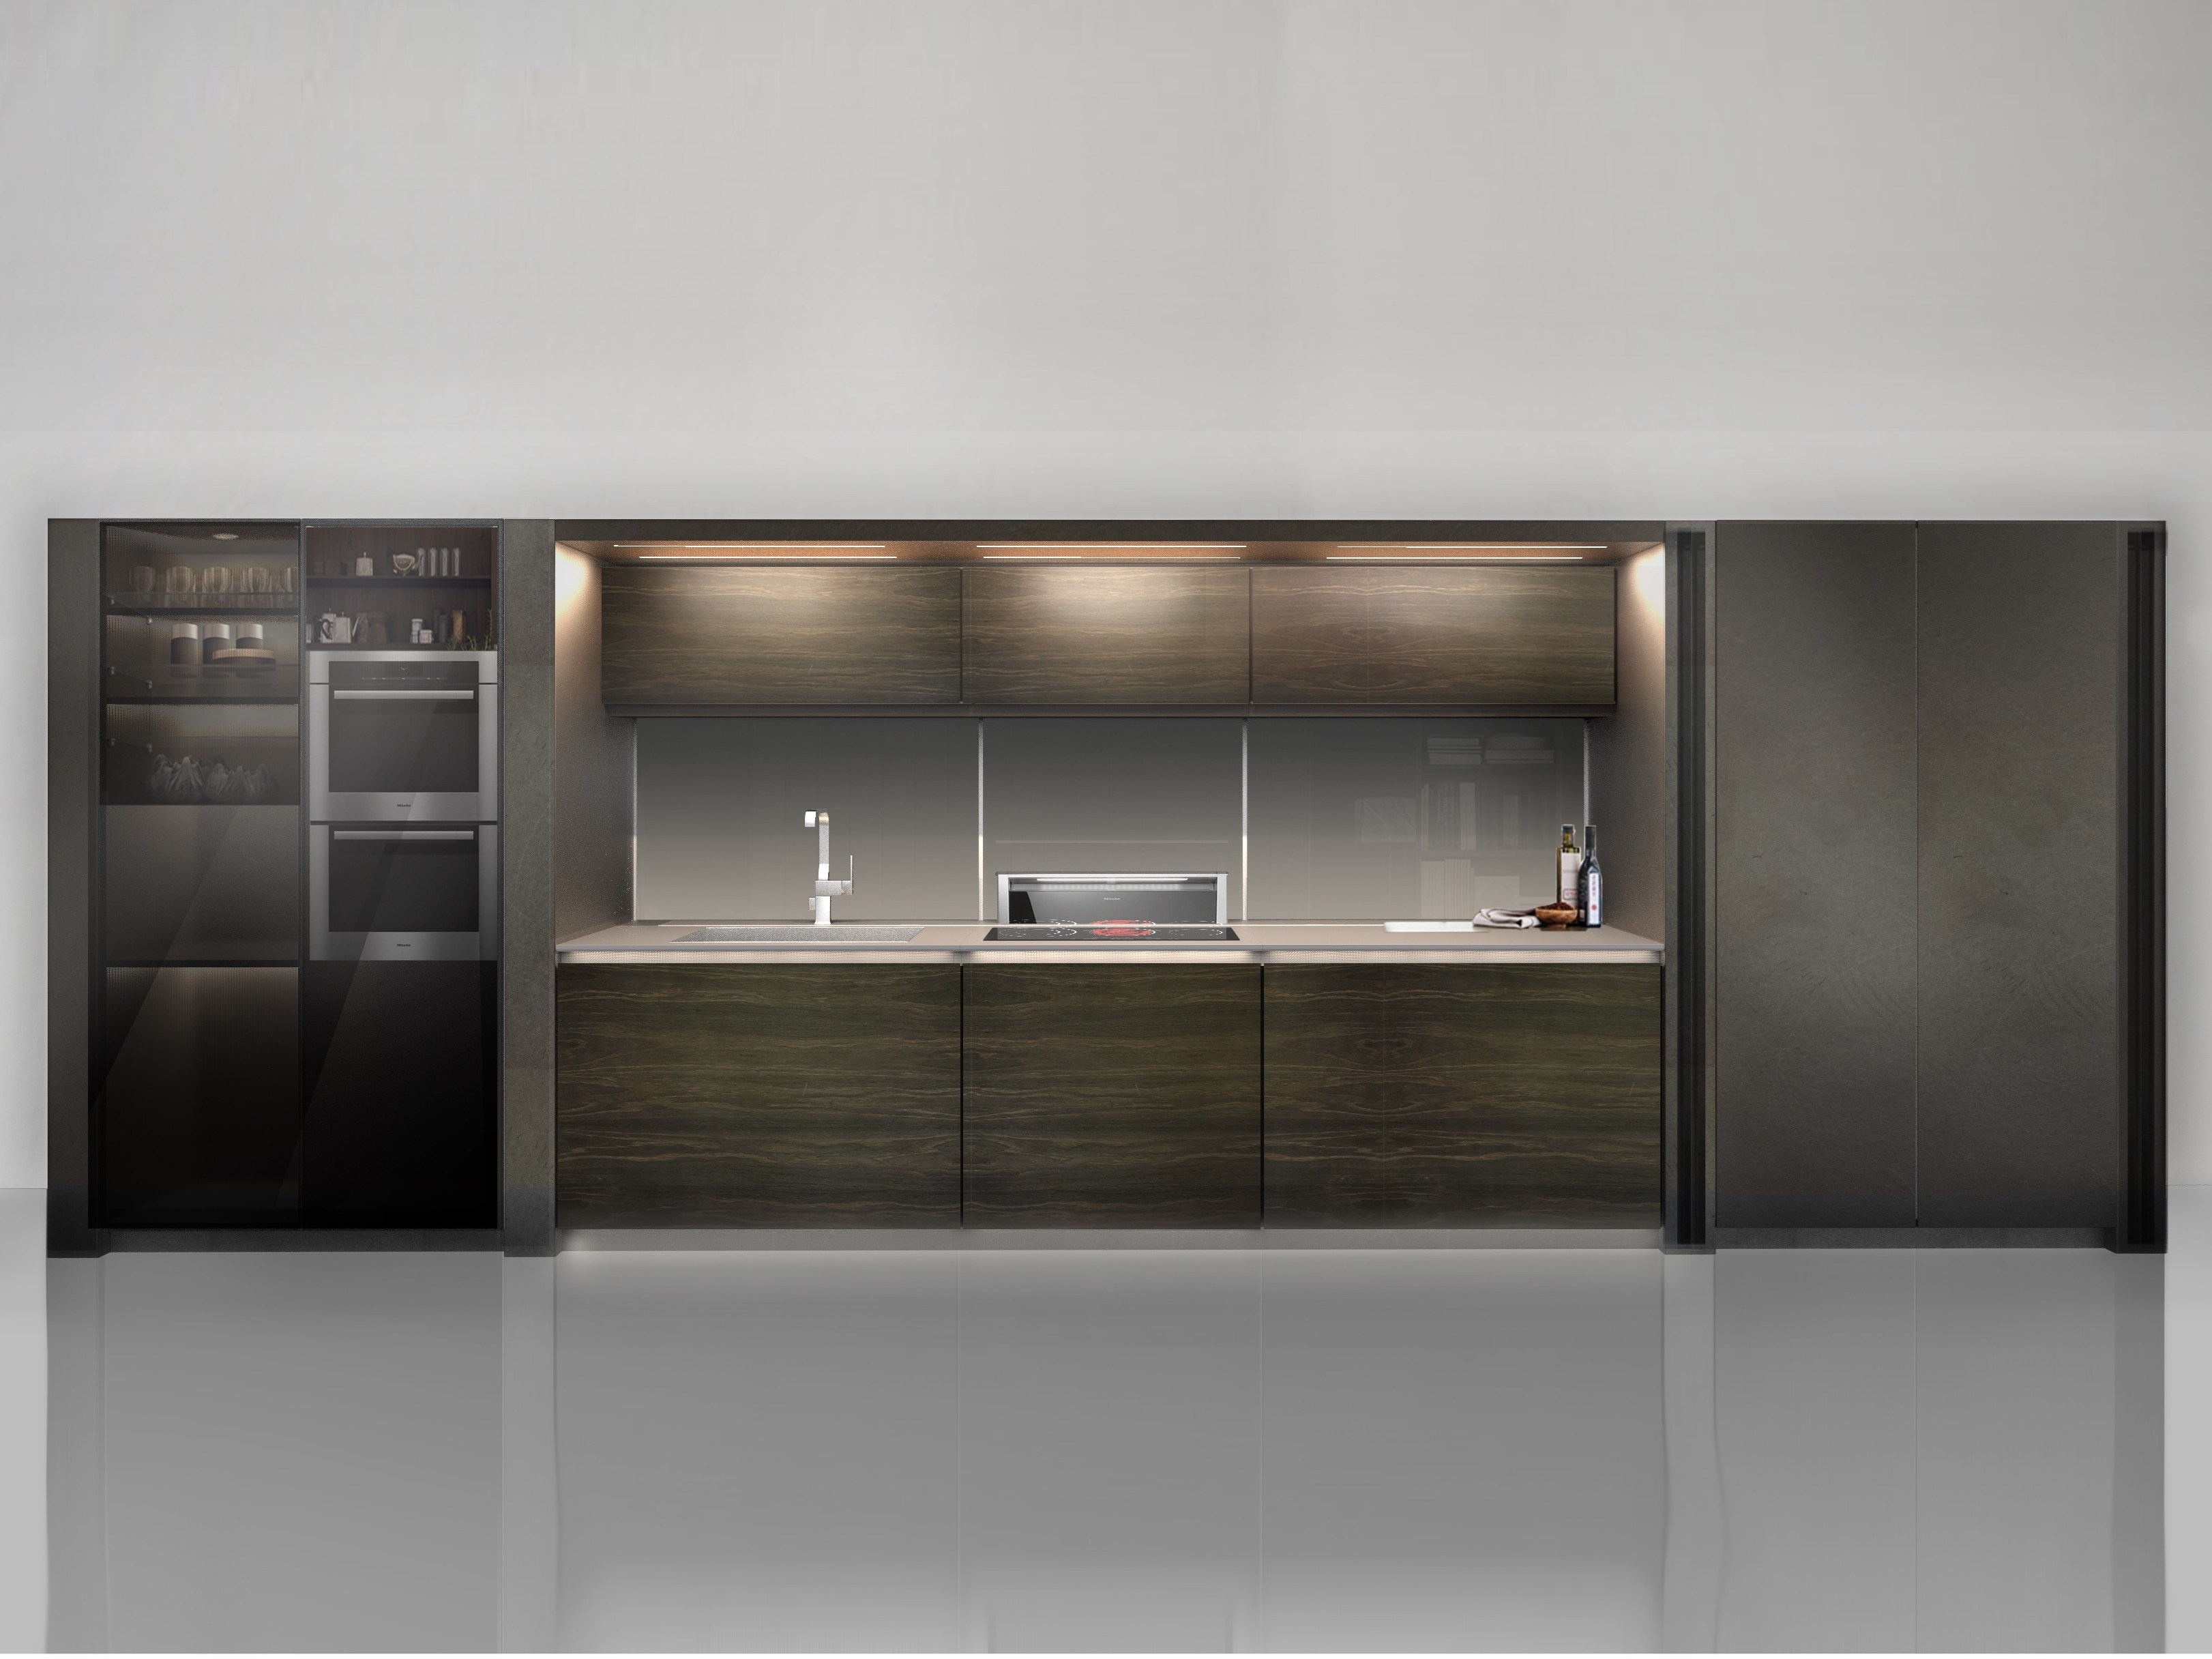 euromobil | cucine moderne e componibili | archiproducts - Cucina Euromobil